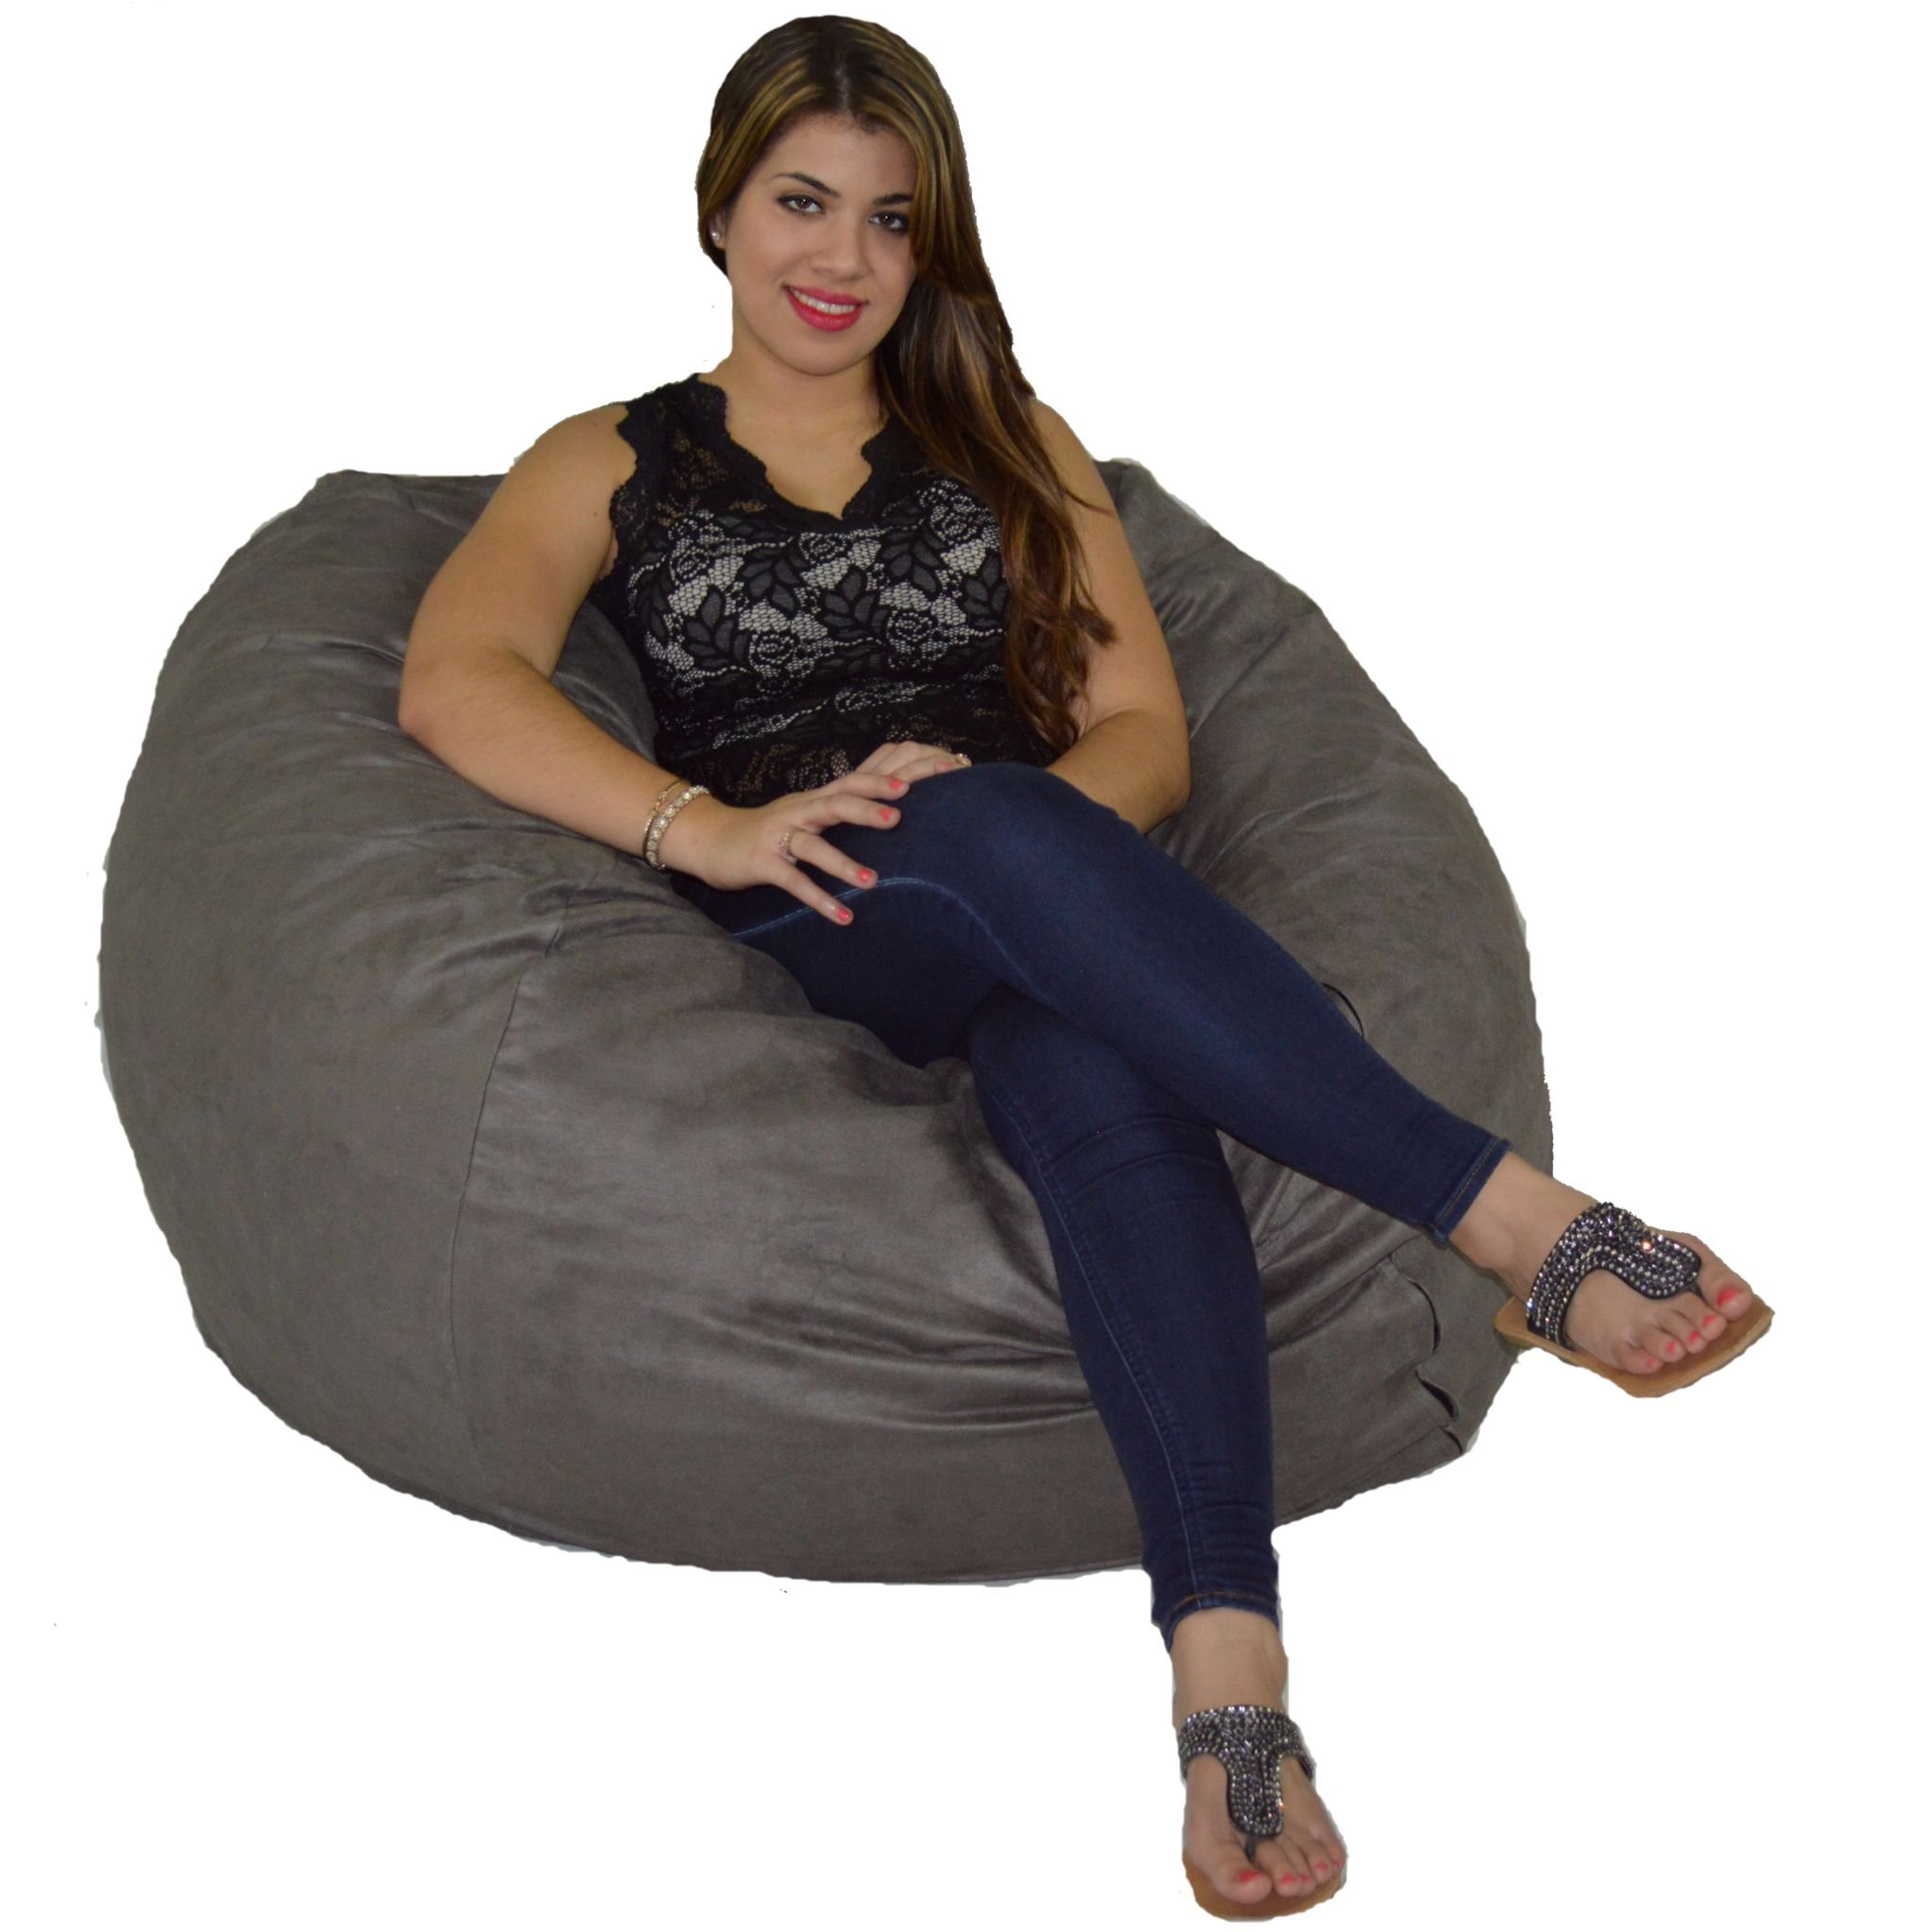 Bean Bag Chair 4' with 20 Cubic Feet of Premium Foam inside a Protective Liner Plus Removable Machine Wash Microfiber Cover